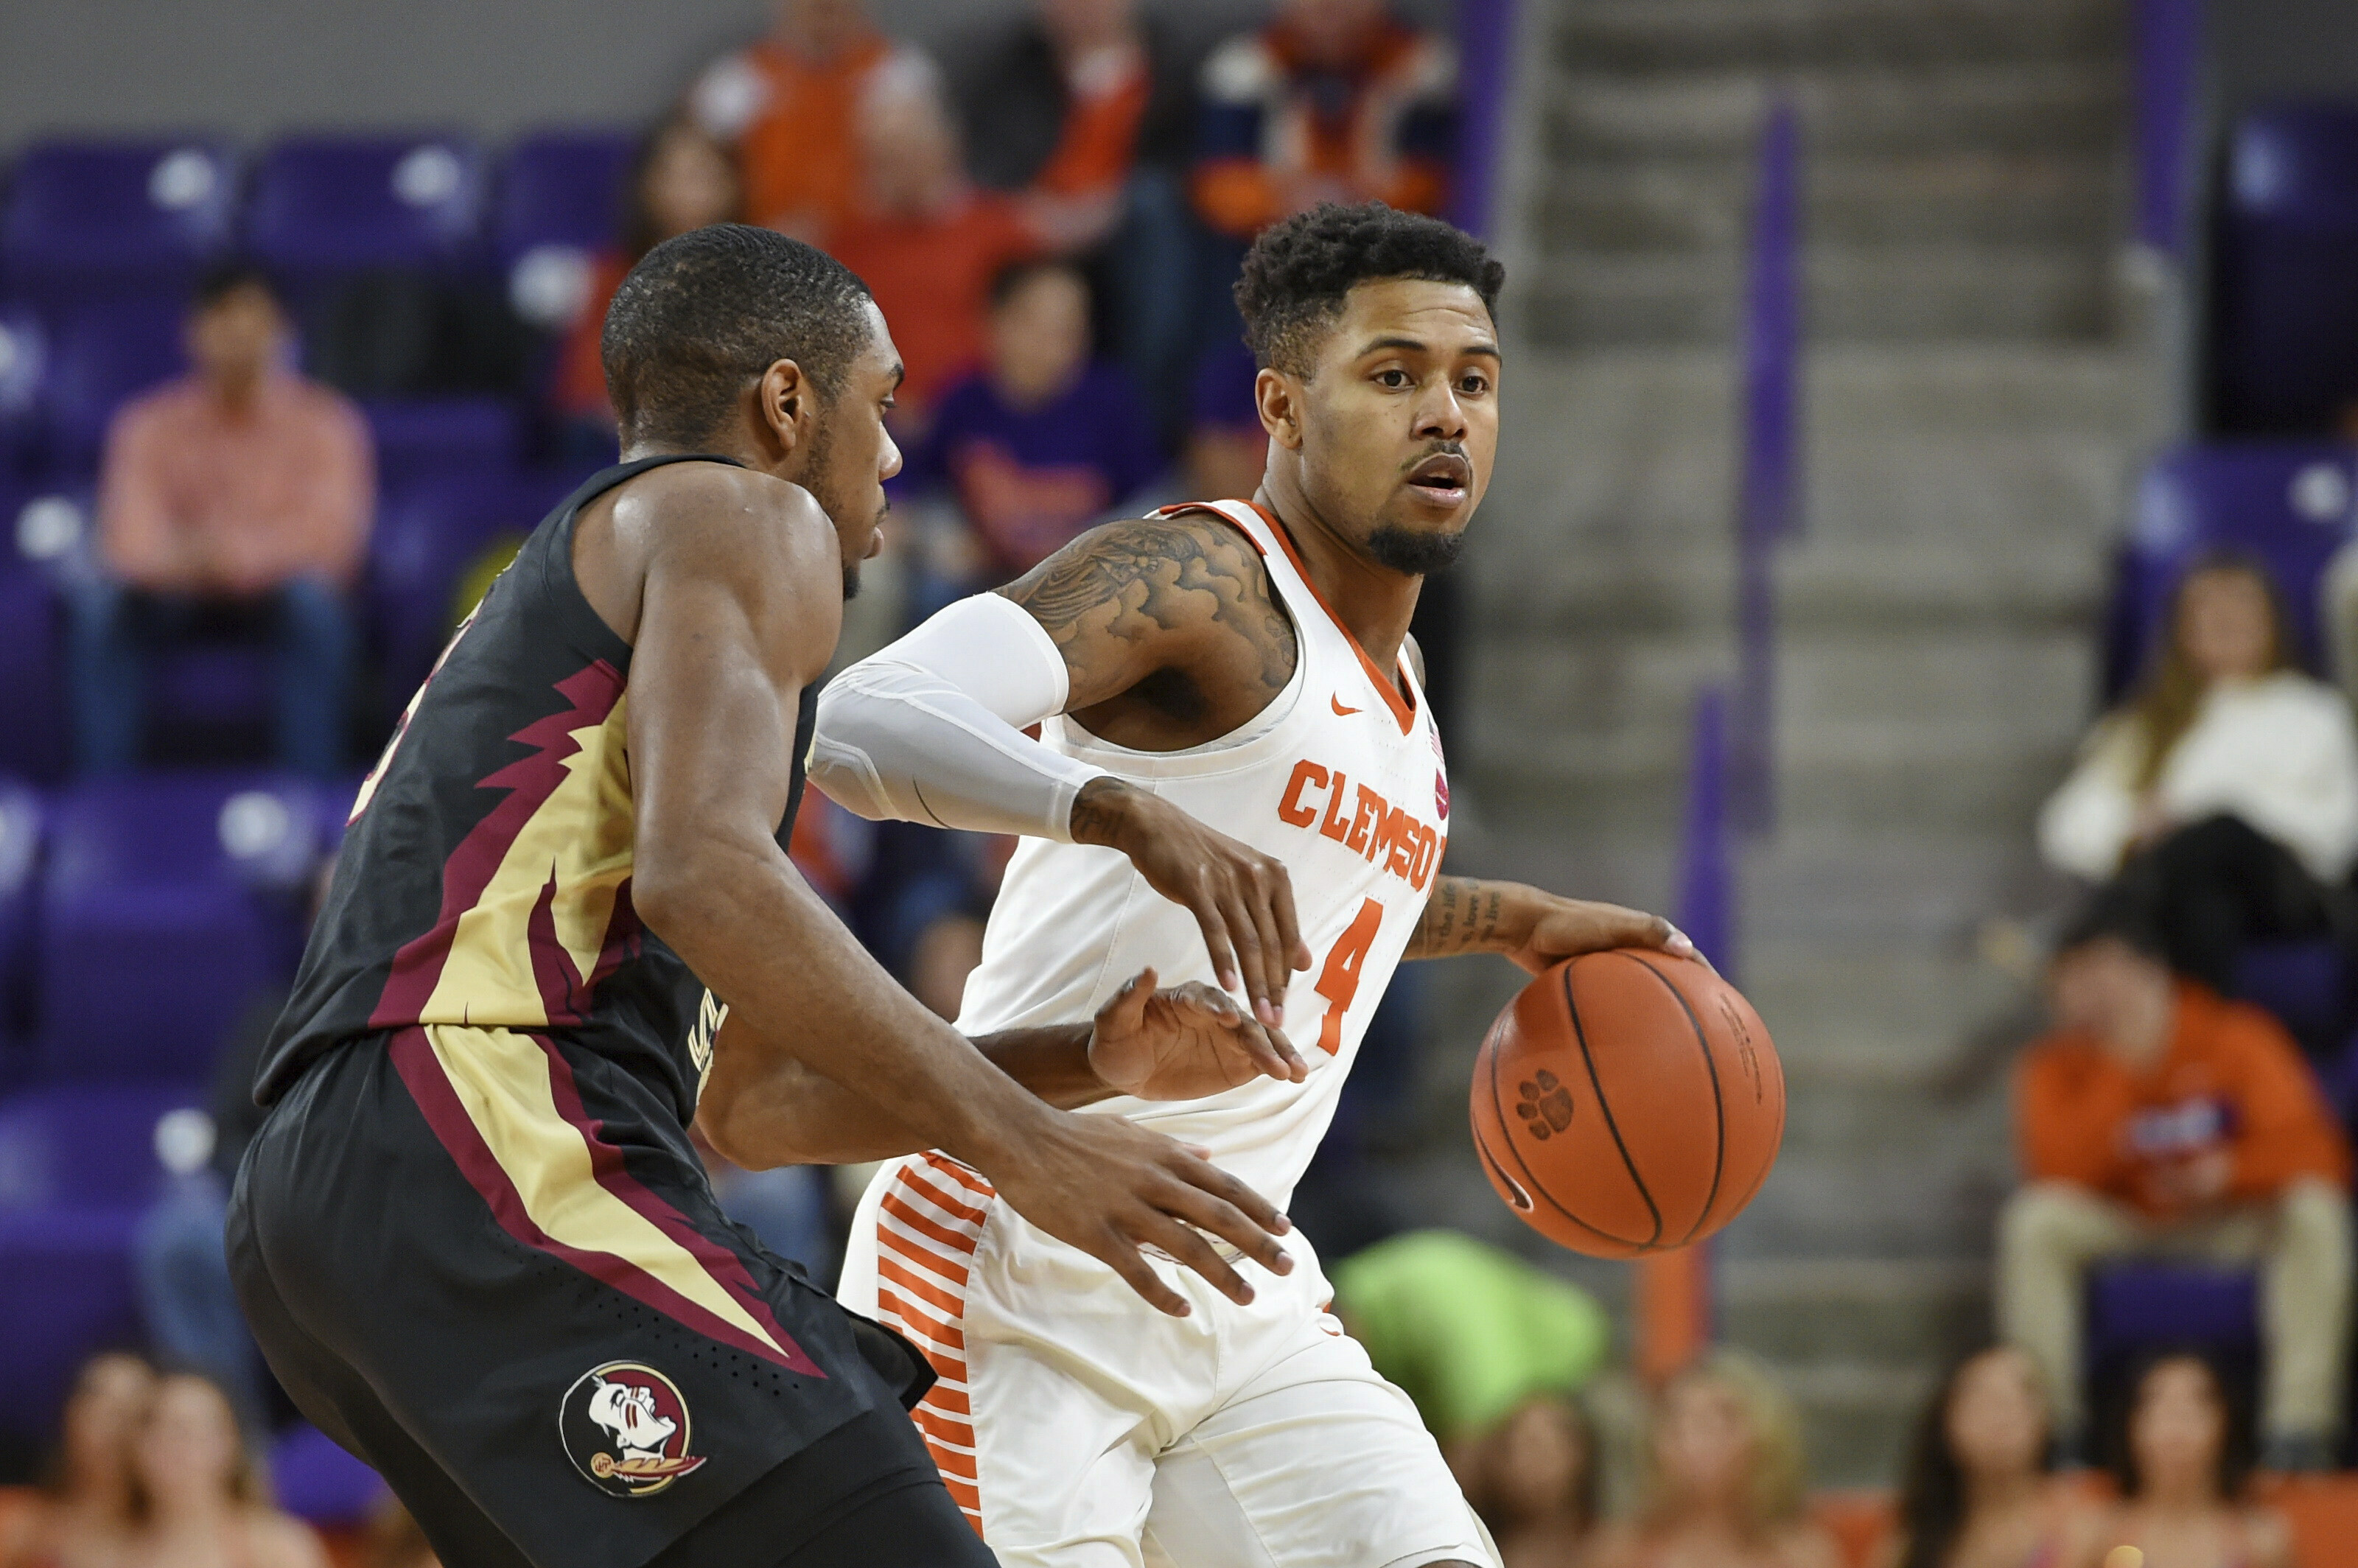 Clemson's Shelton Mitchell, right, drives against Florida State's Trent Forrest, left, during the first half of an NCAA college basketball game Tuesday, Feb. 19, 2019, in Clemson, S.C. (AP Photo/Richard Shiro)